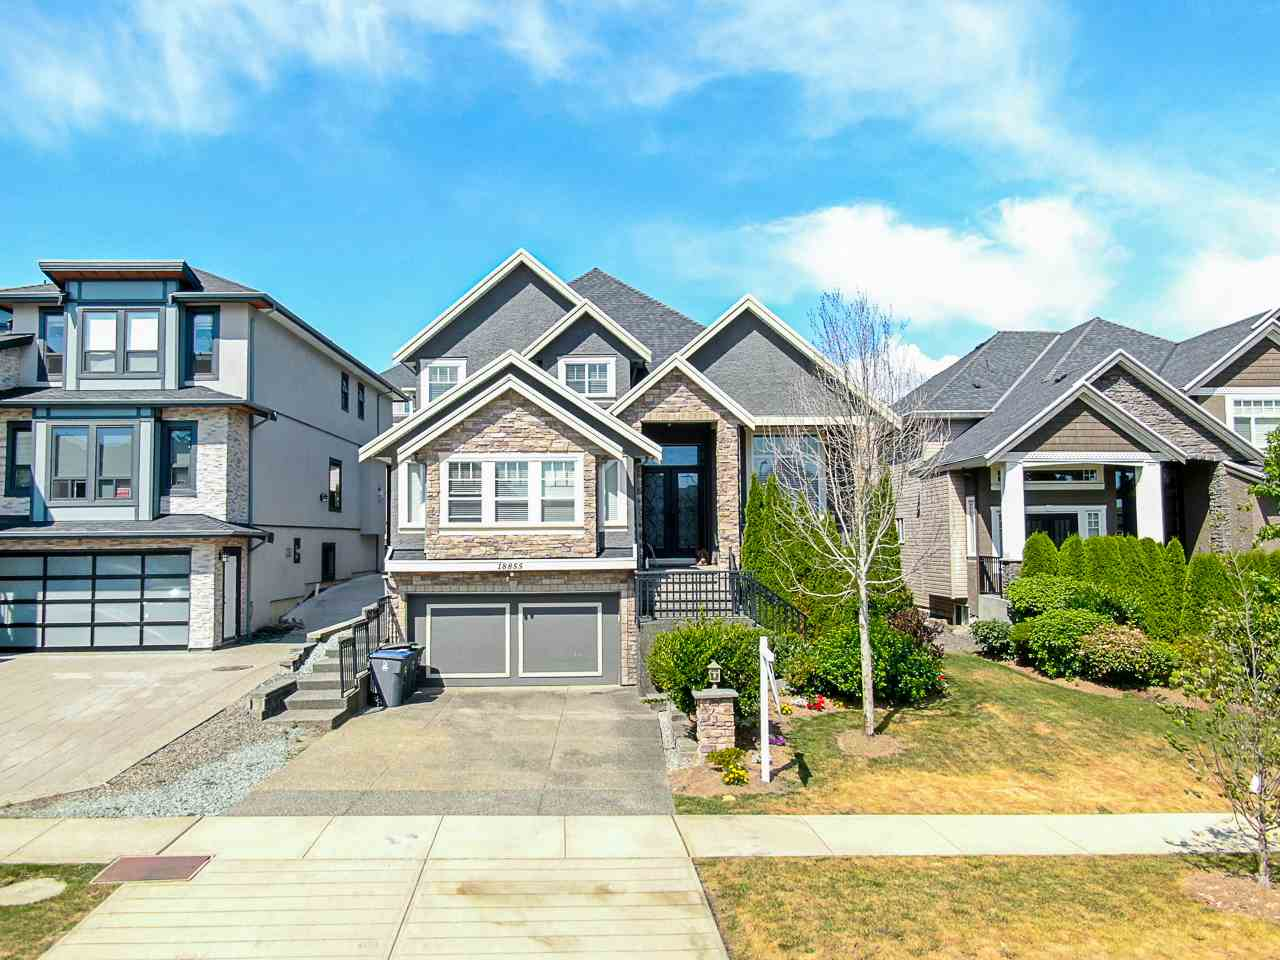 18855 54A AVENUE - Cloverdale BC House/Single Family for sale, 6 Bedrooms (R2521890) - #1